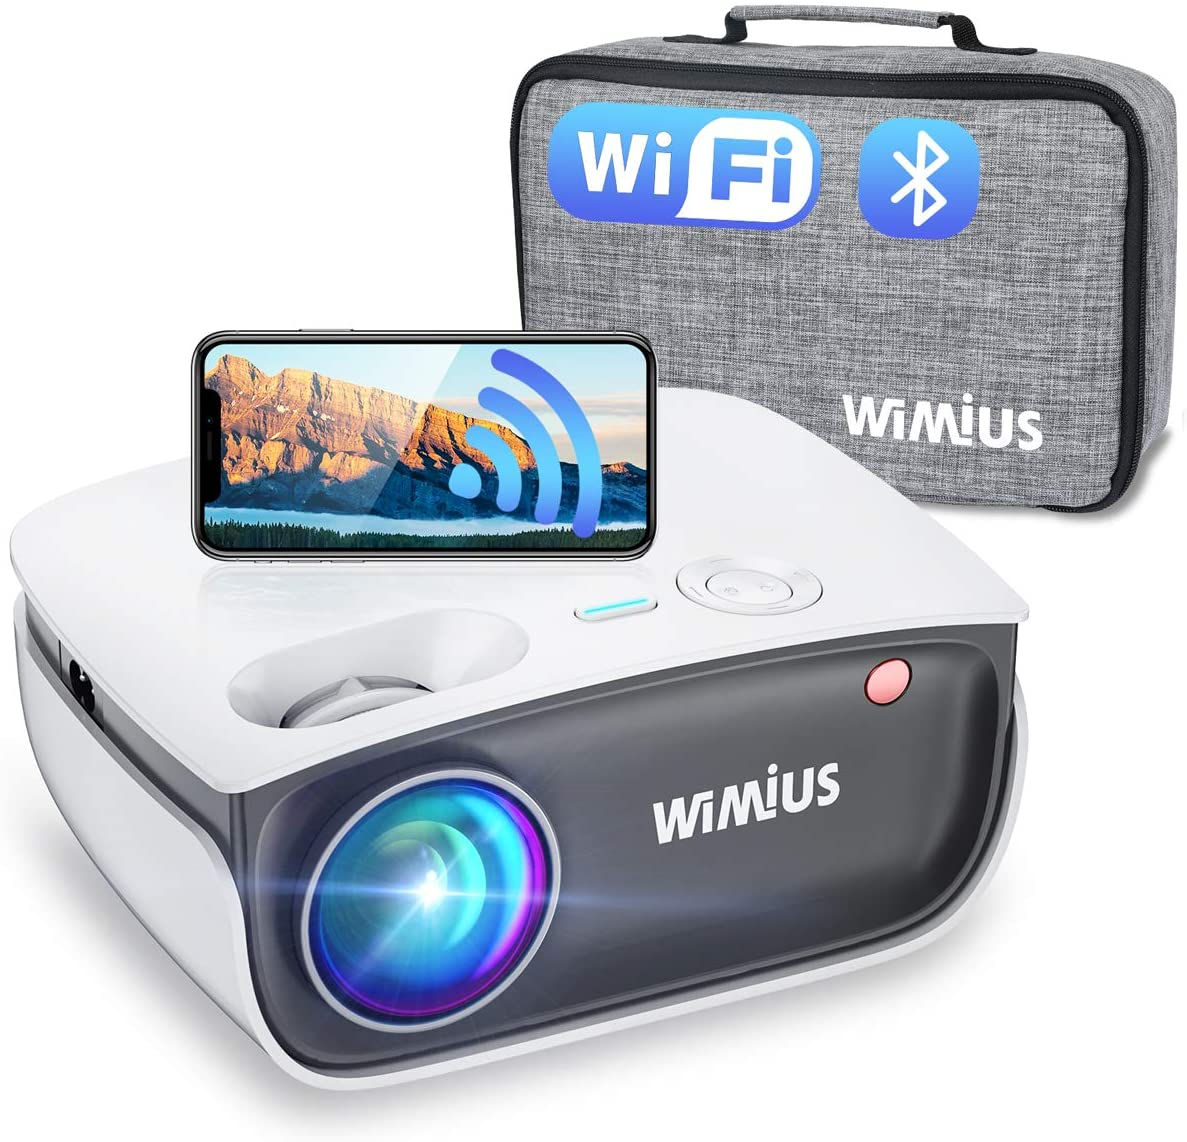 Wifi Bluetooth Projector Support 1080P Full HD Enhanced, 20%+ Brightness, WiMiUS S25 Mini Portable Outdoor Movie Projector w/ Wireless Mirroring & Airplay & Zoom 50%, for Fire TV Stick, HDMI, PC, PS4